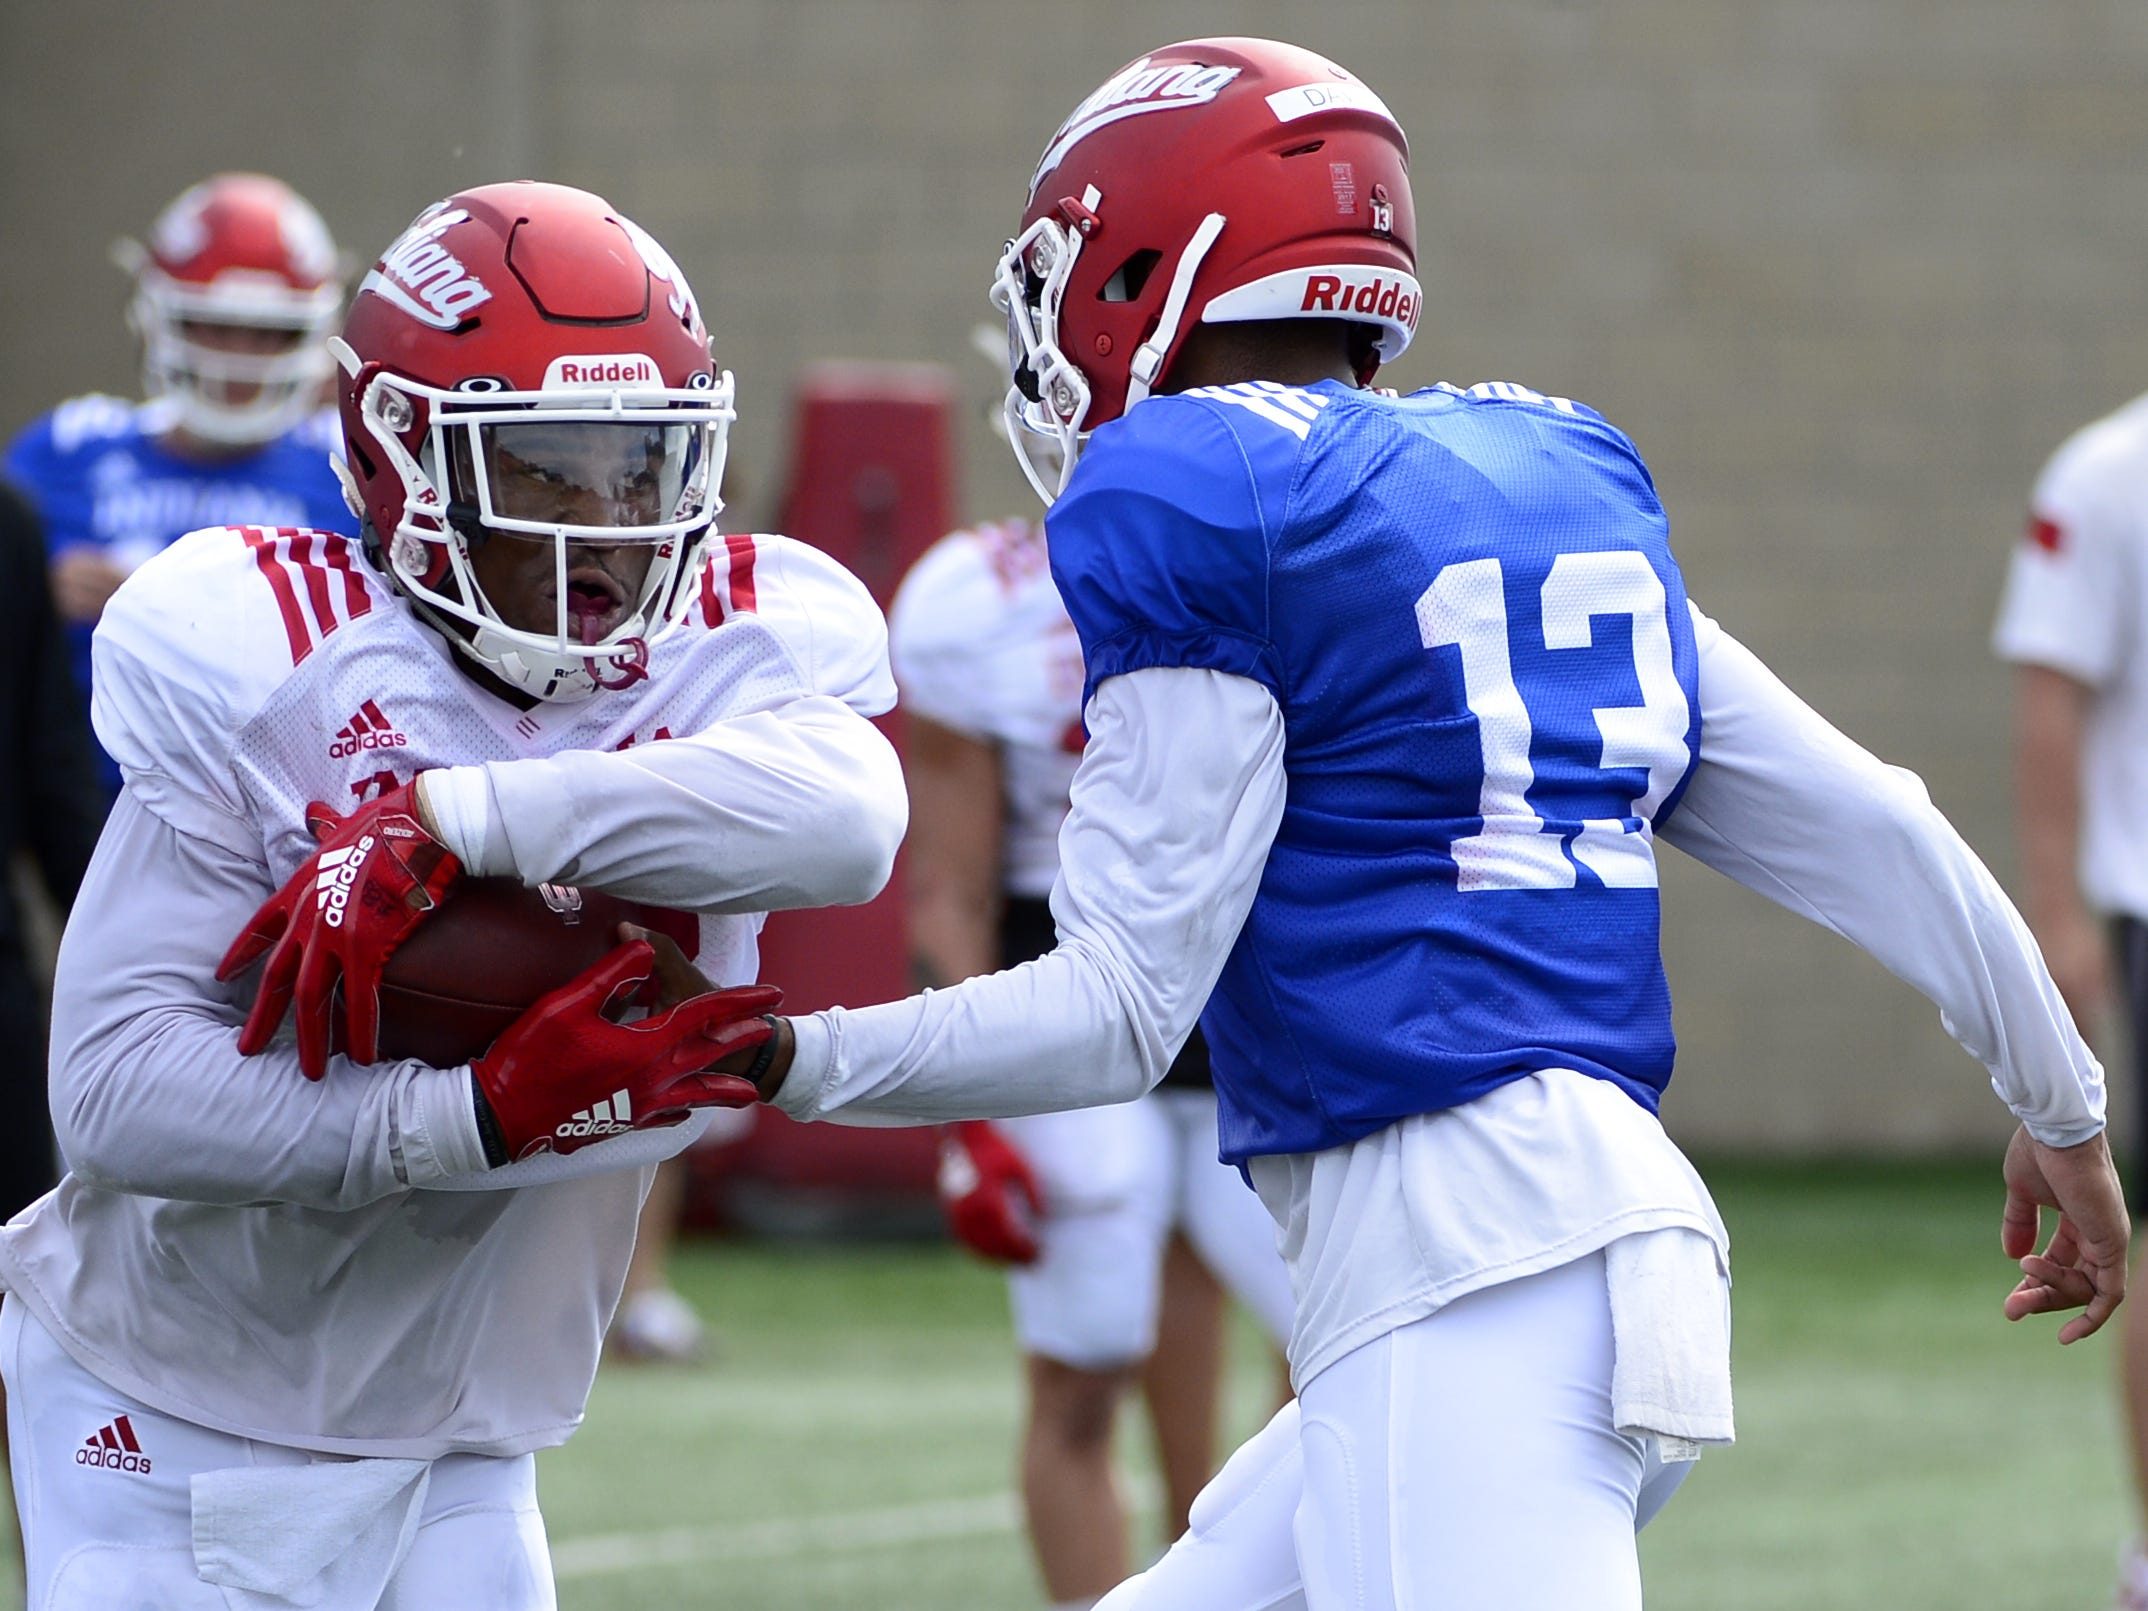 Indiana Hoosiers quarterback Brandon Dawkins (13) hands the ball to running back Kristian Pechac (28) during practice at Mellencamp Pavilion in Bloomington, Ind., on Friday, August 10, 2018.